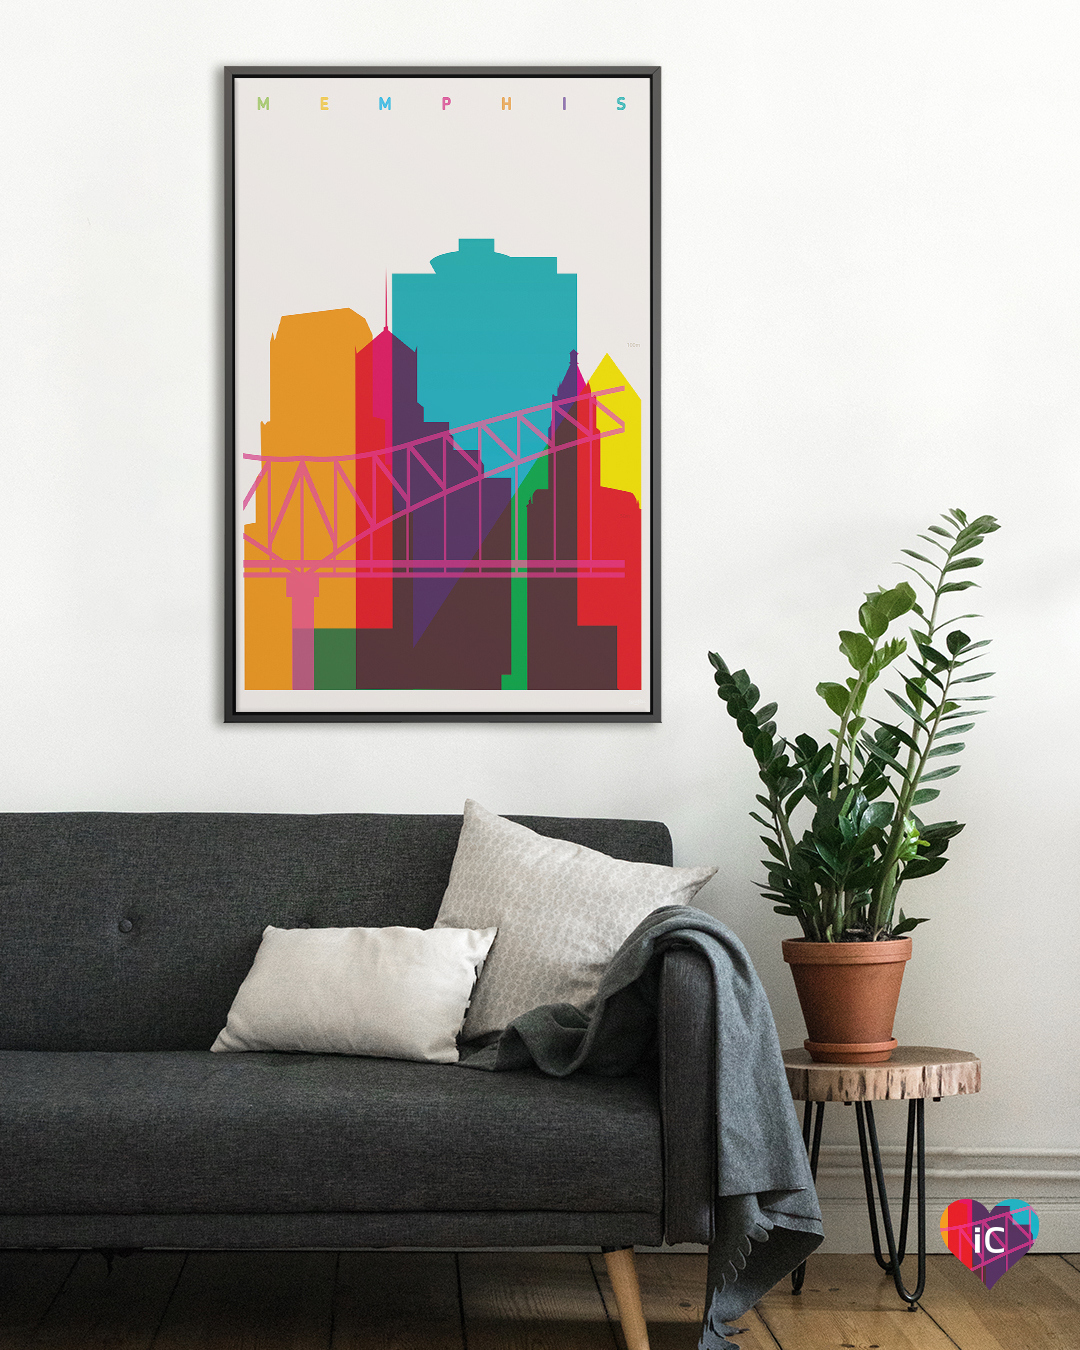 Minimalist graphic of outline of Memphis skyline and bridge in multiple colors on a beige background hanging on a wall in a living room with a black couch and potted plant